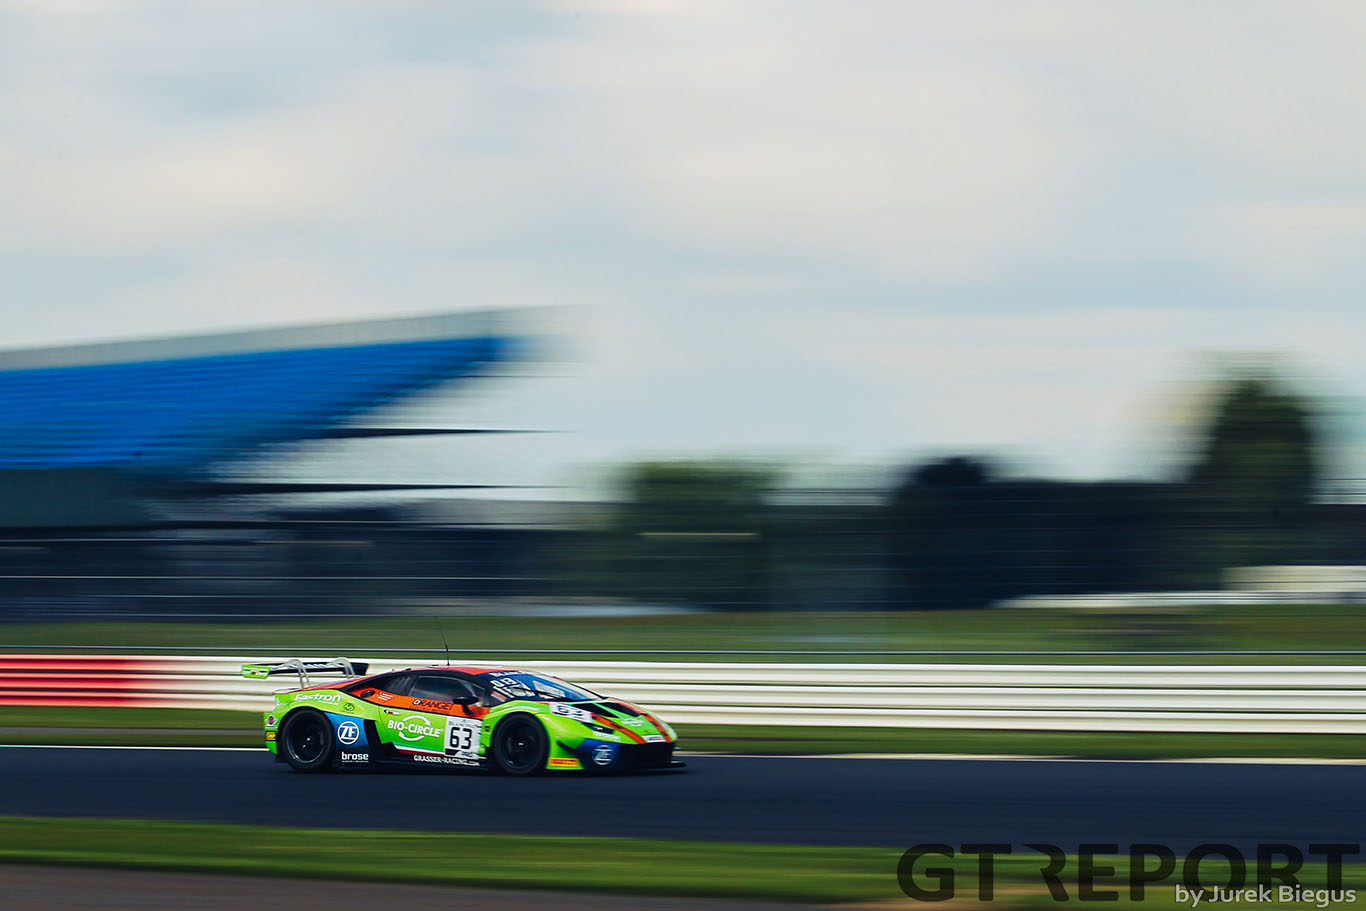 Blancpain GT Silverstone: Italians show up the Brits in pre-qualifying